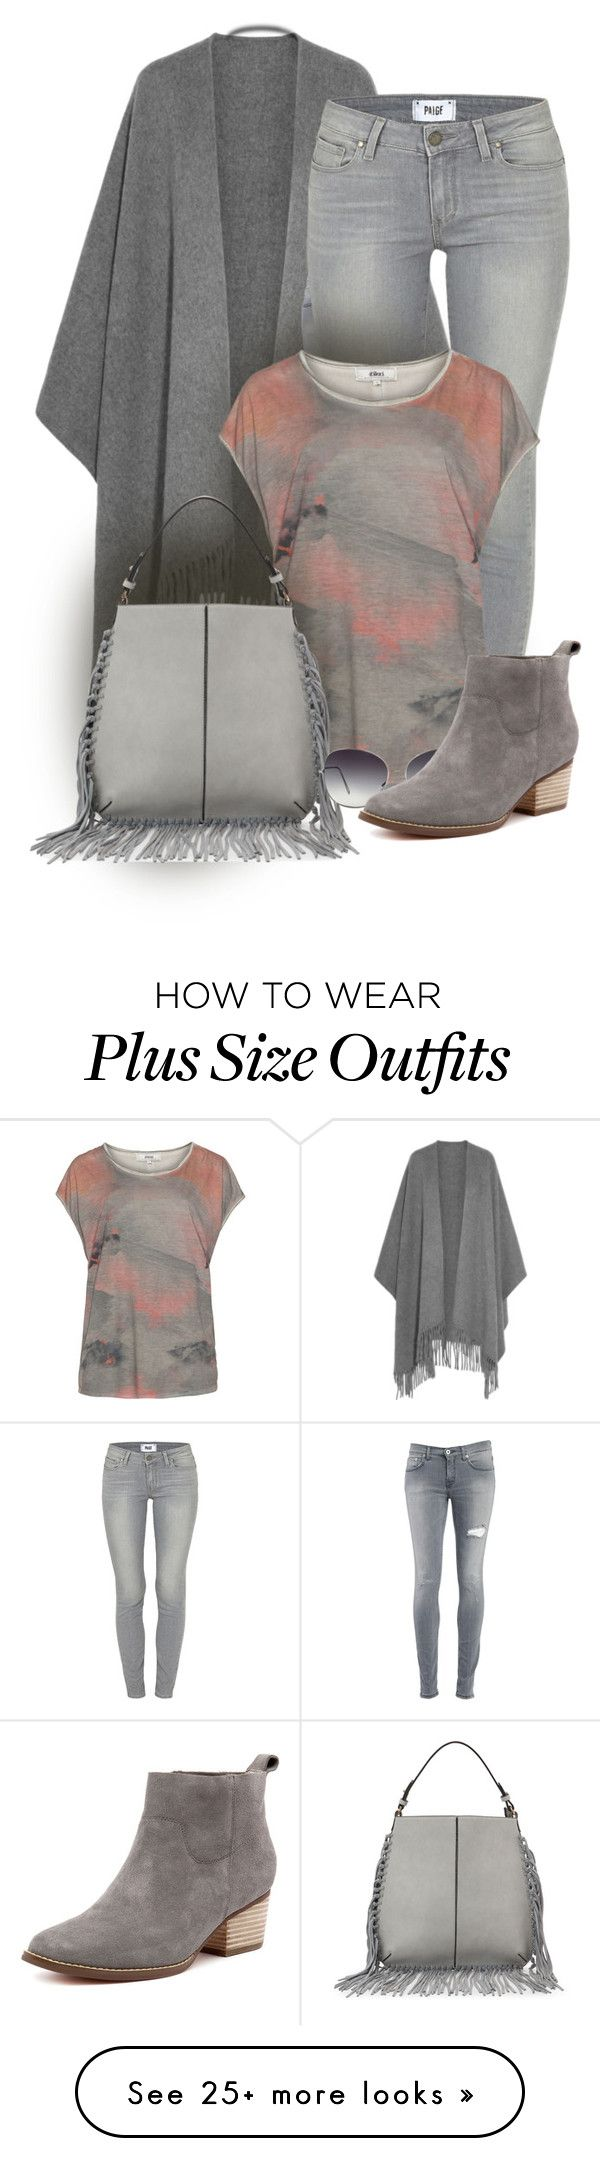 """""""Grey Outfit"""" by seahag2903 on Polyvore featuring Trilogy, Acne Studios, Dondup, Paige Denim, Zizzi, Moda Luxe and Oliver Peoples"""